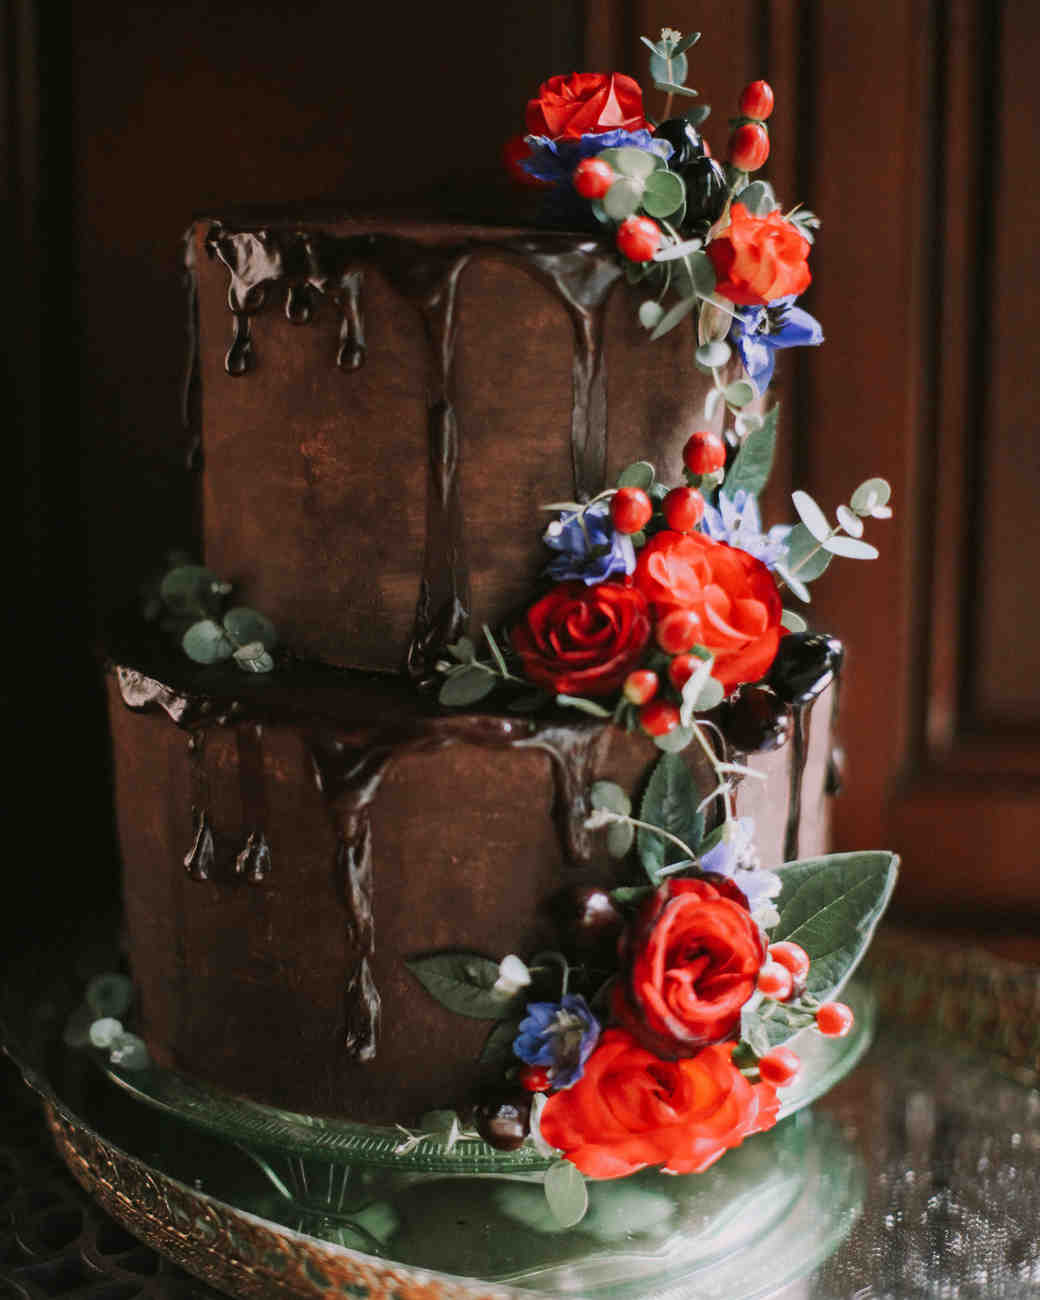 Fun Wedding Cake Ideas: 26 Chocolate Wedding Cake Ideas That Will Blow Your Guests